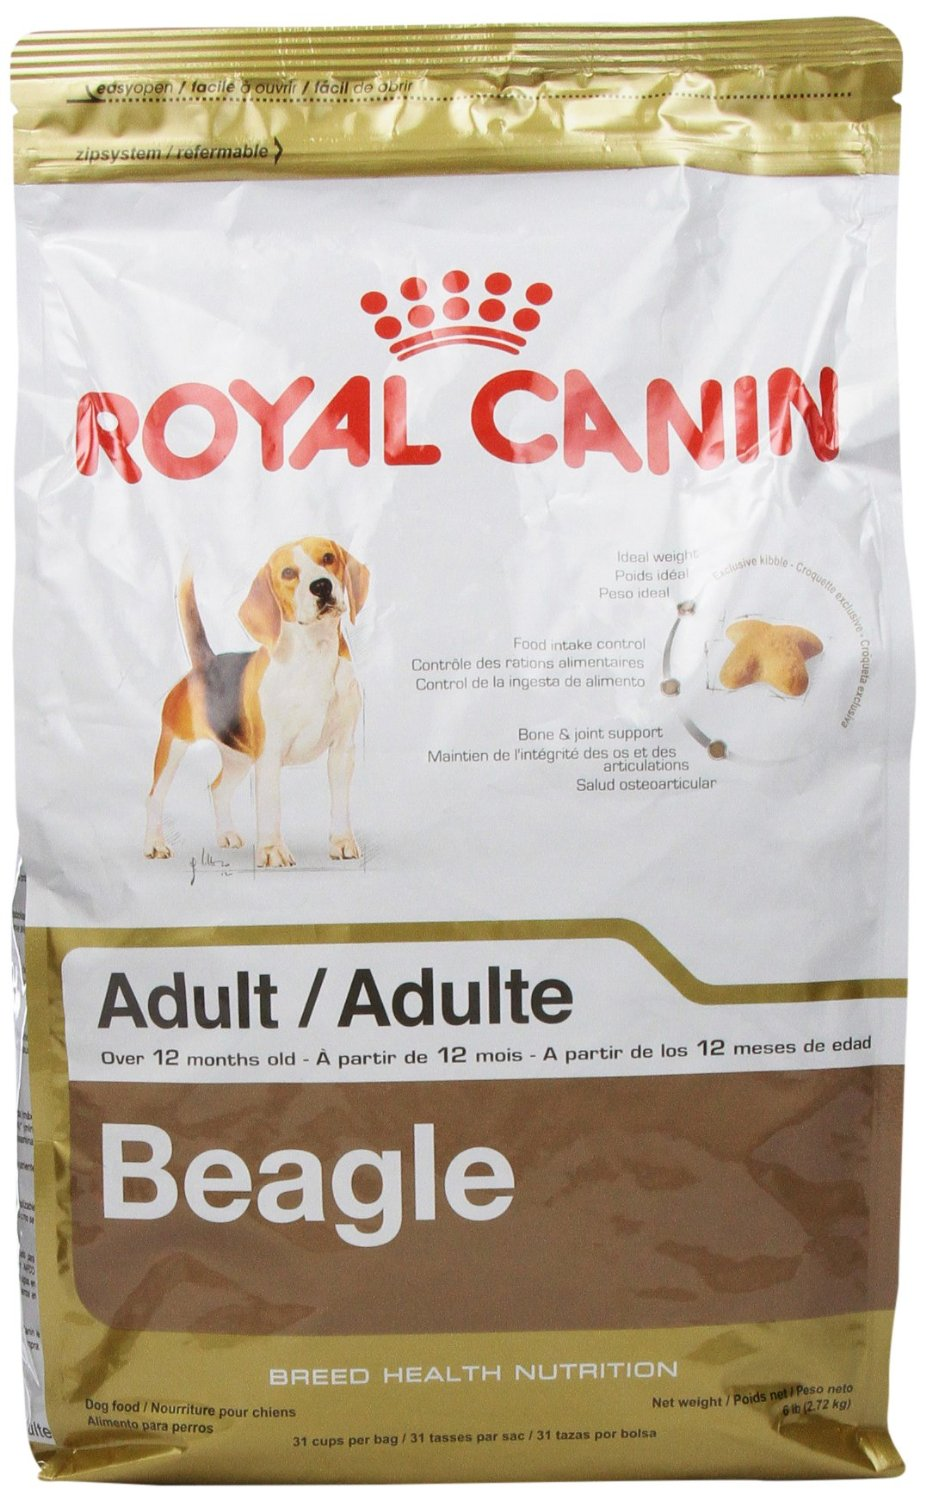 Royal Canin Beagle Dog Food